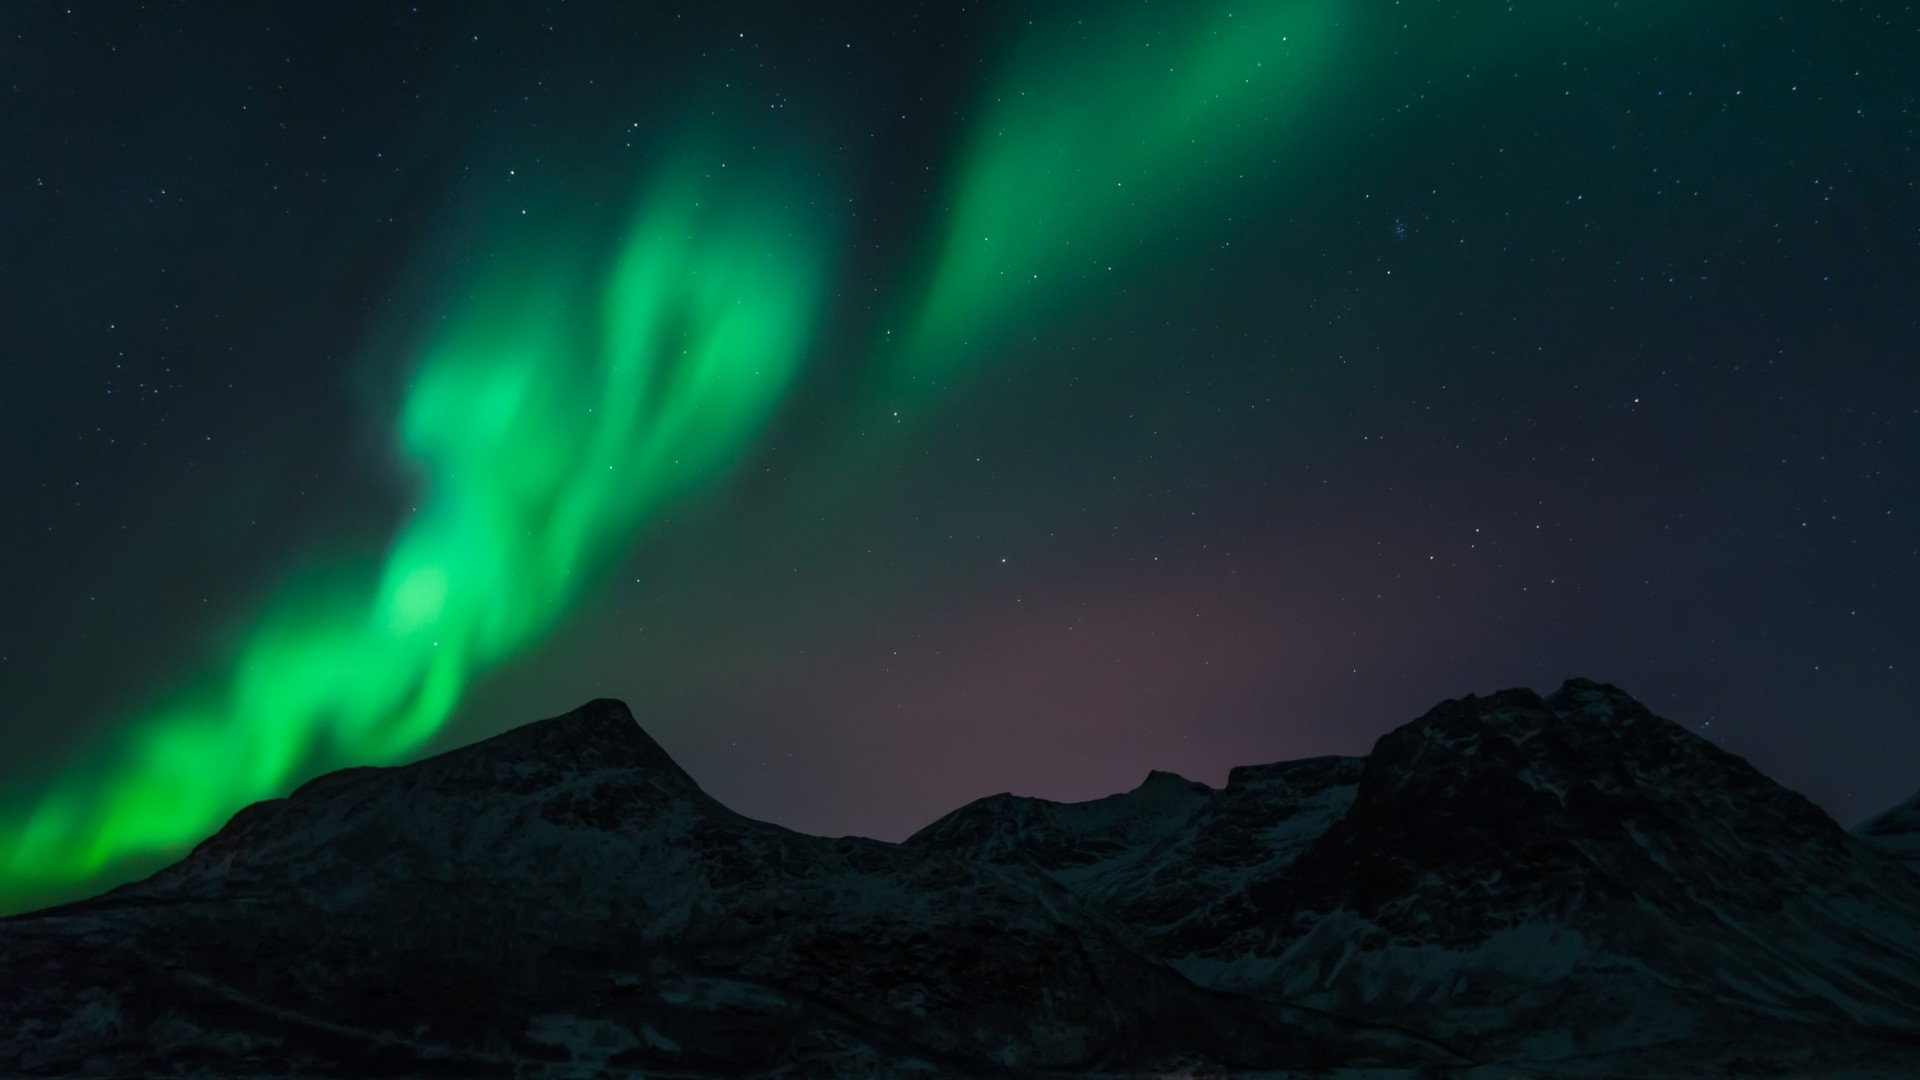 Northern Lights hd wallpaper download